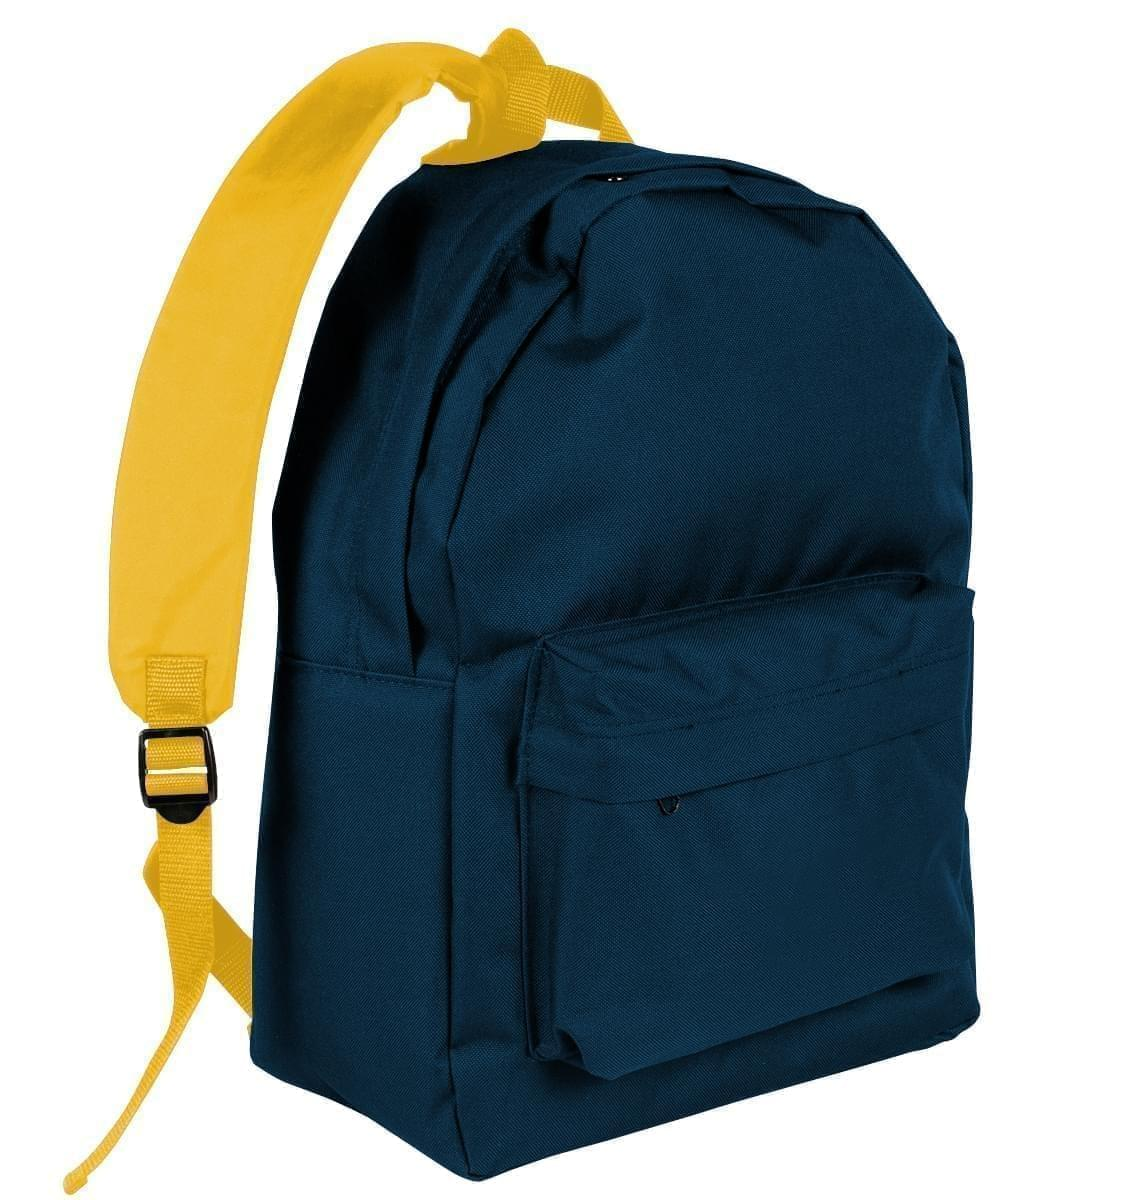 USA Made Nylon Poly Backpack Knapsacks, Navy-Gold, 8960-AW5